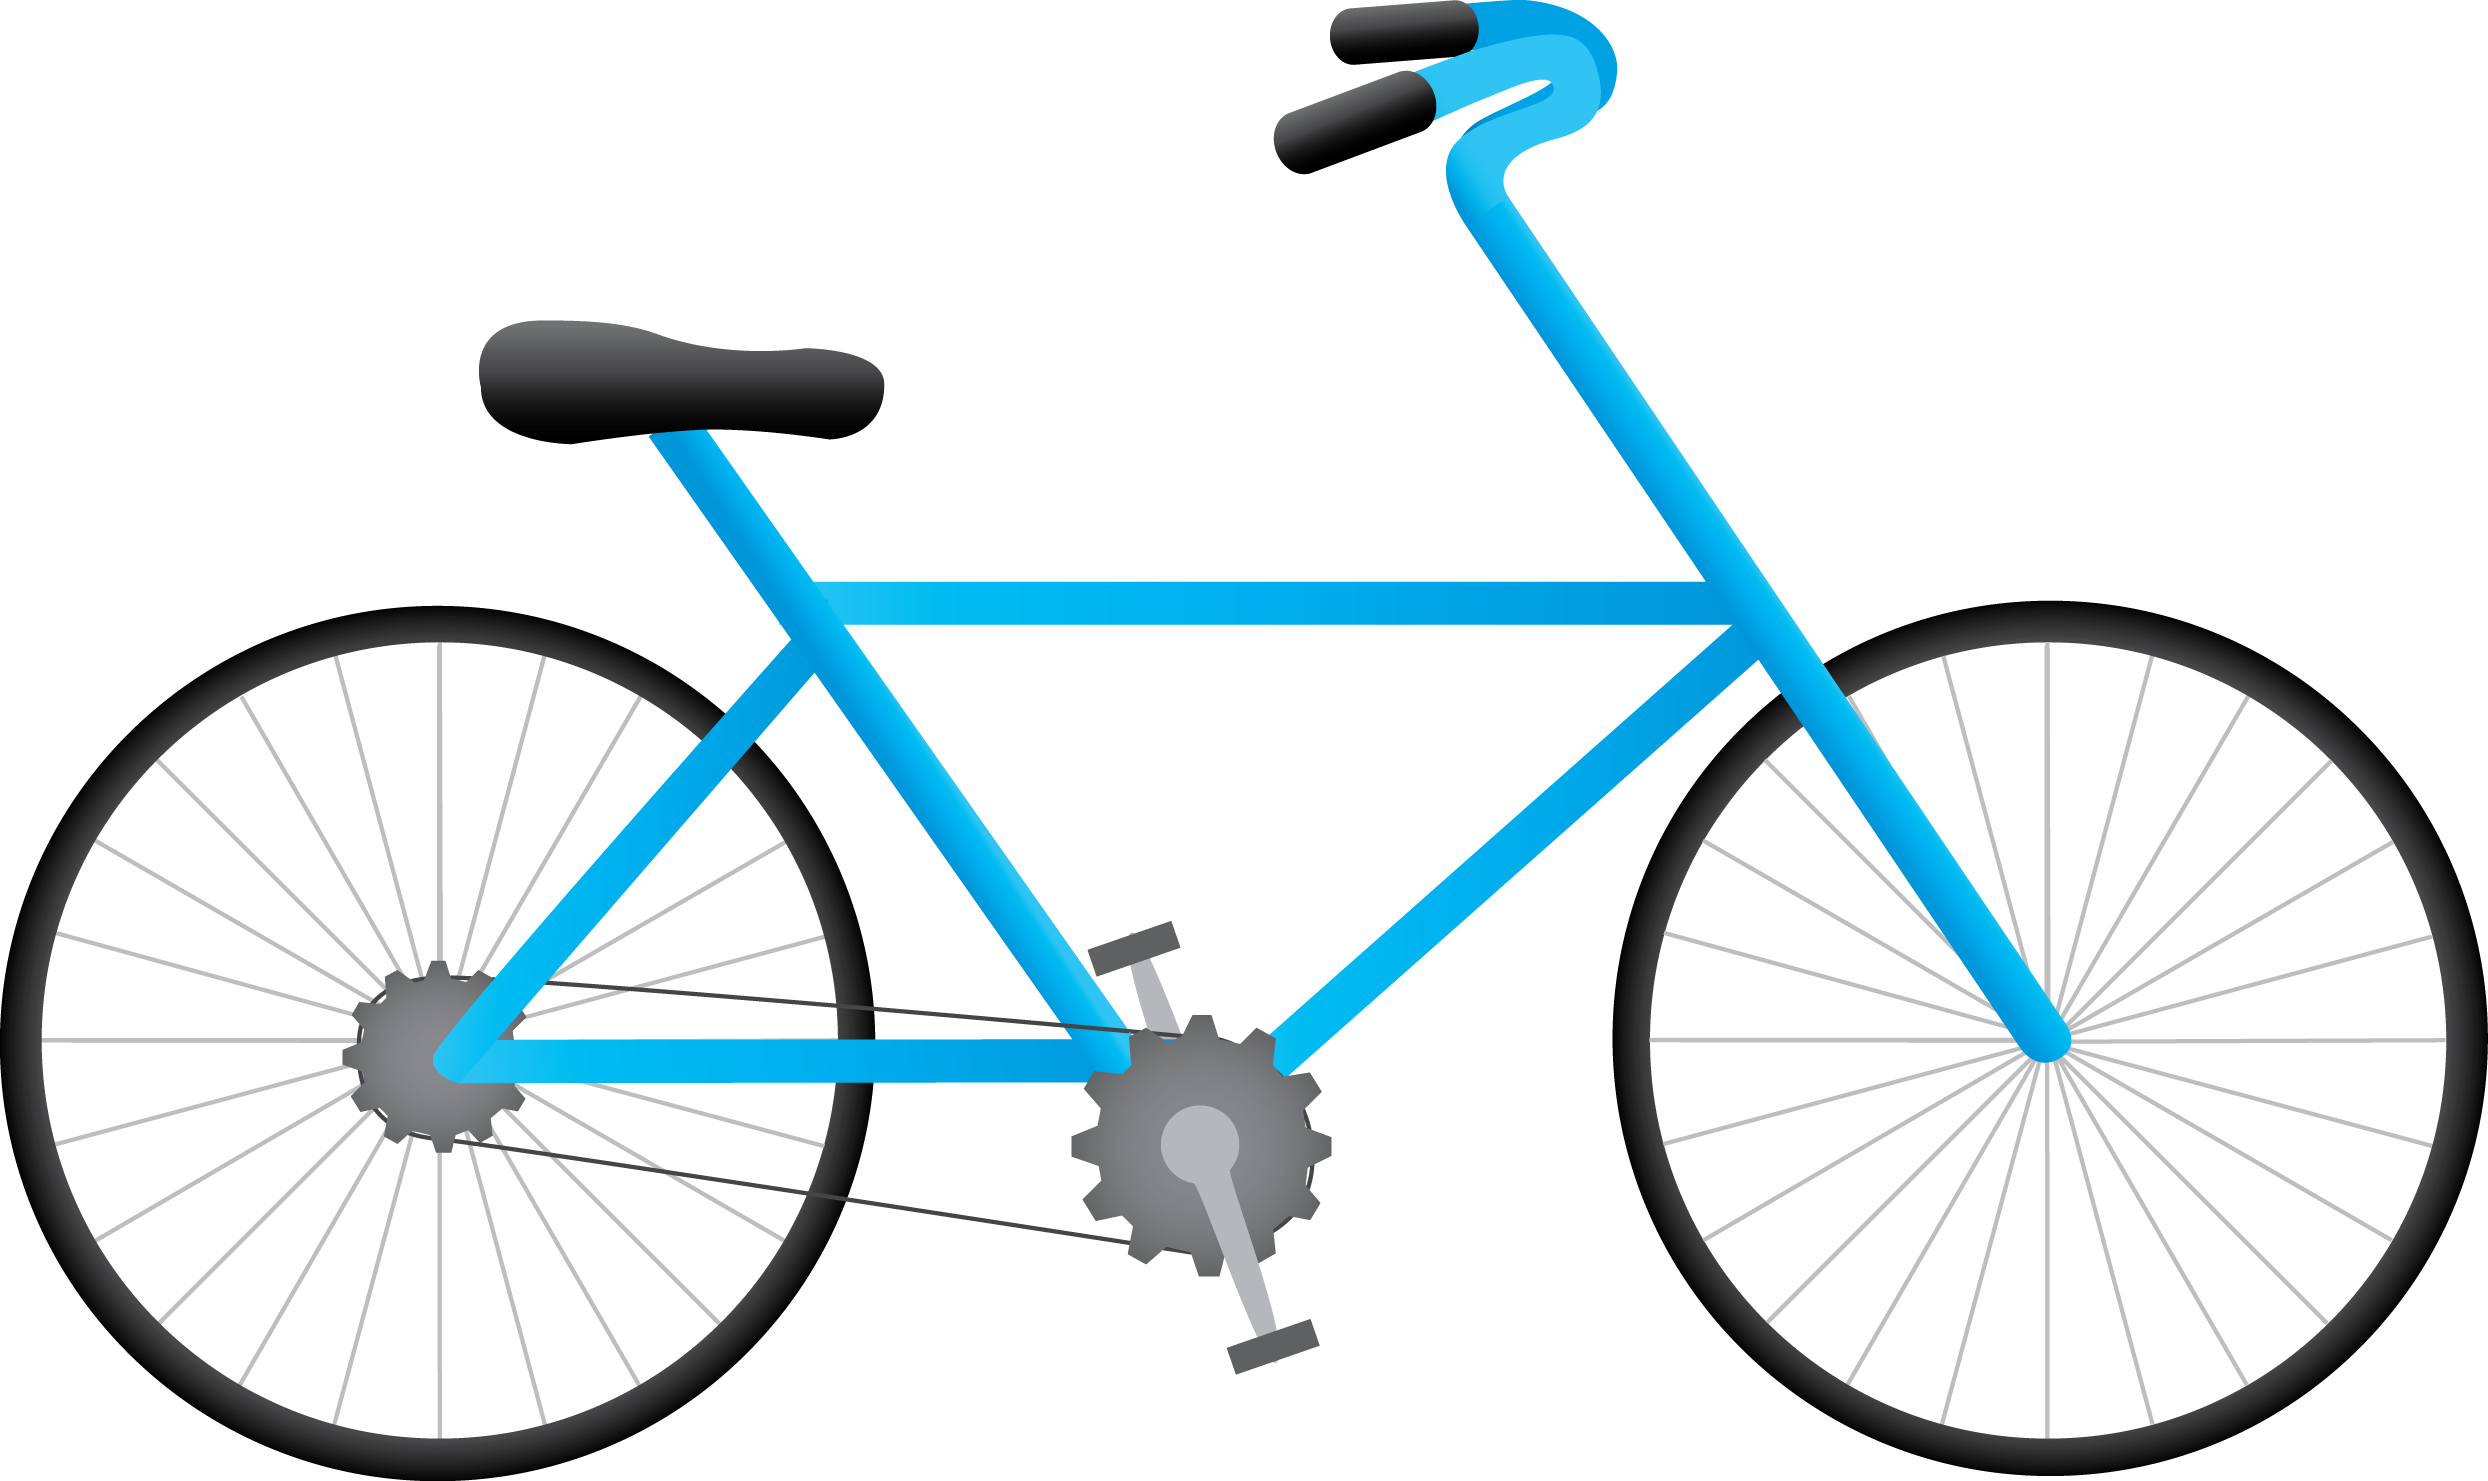 Bicycle Png - ClipArt Best